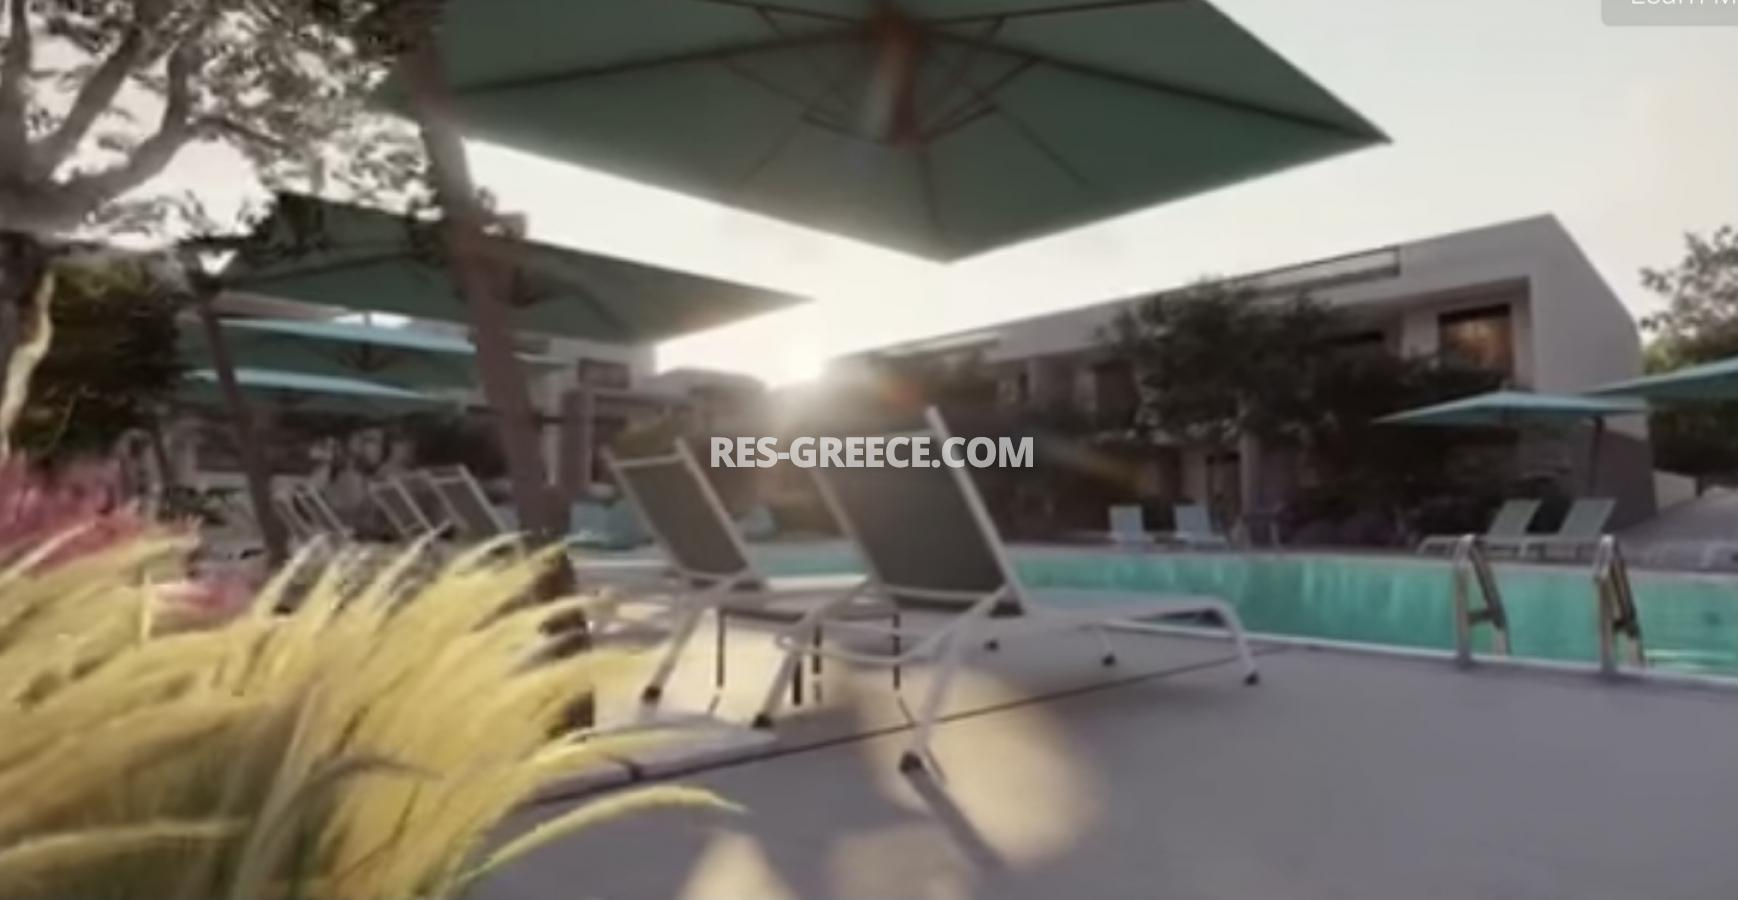 Anasa apartments, Halkidiki-Sithonia, Greece - apartments in a new complex with pool - Photo 12